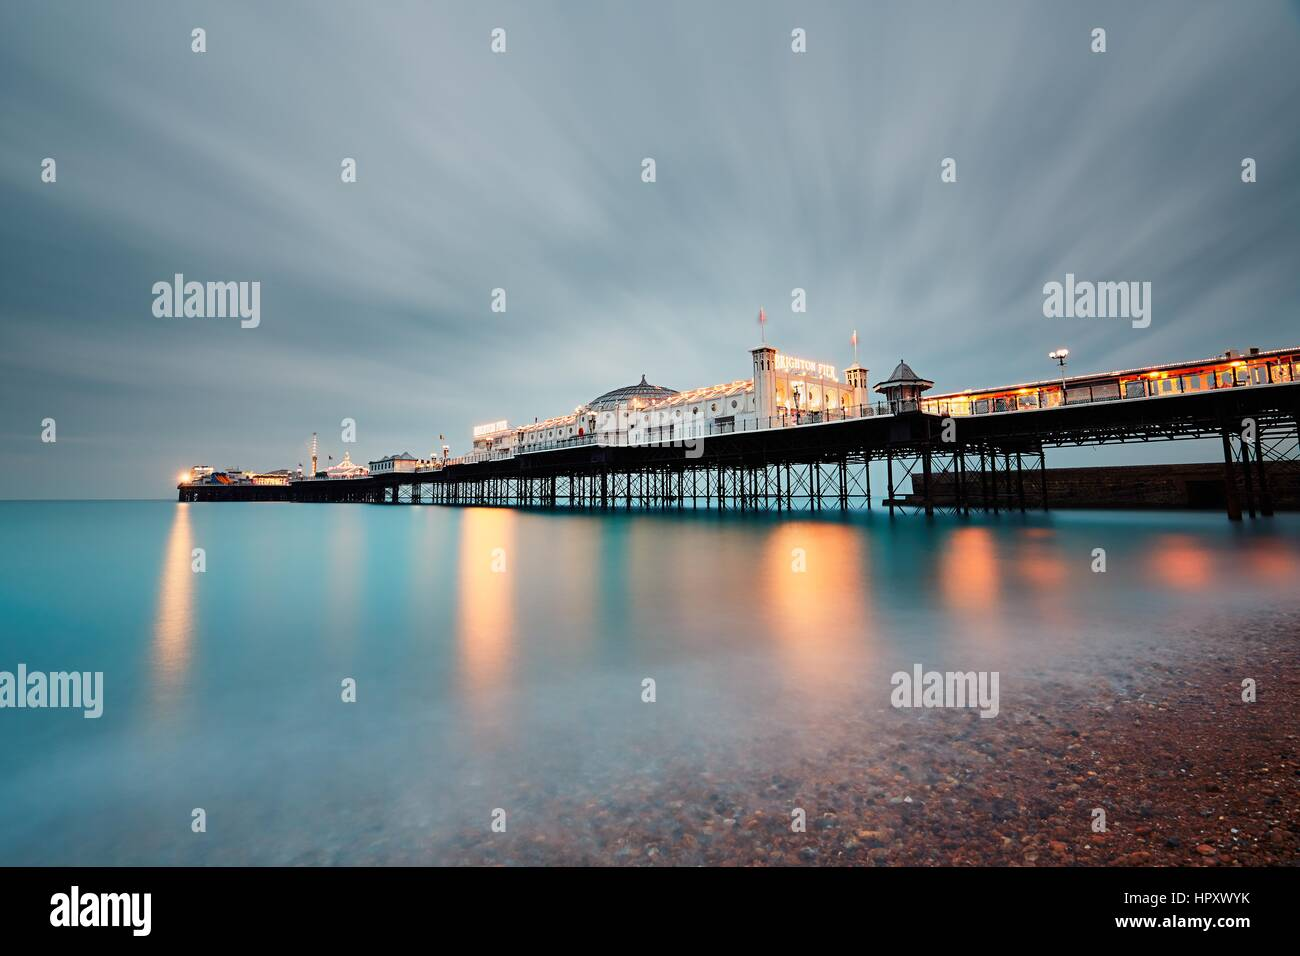 BRIGHTON, UK - OCTOBER 24, 2016: Brighton Marine Palace and Pier is popular tourist attraction, which opened in - Stock Image